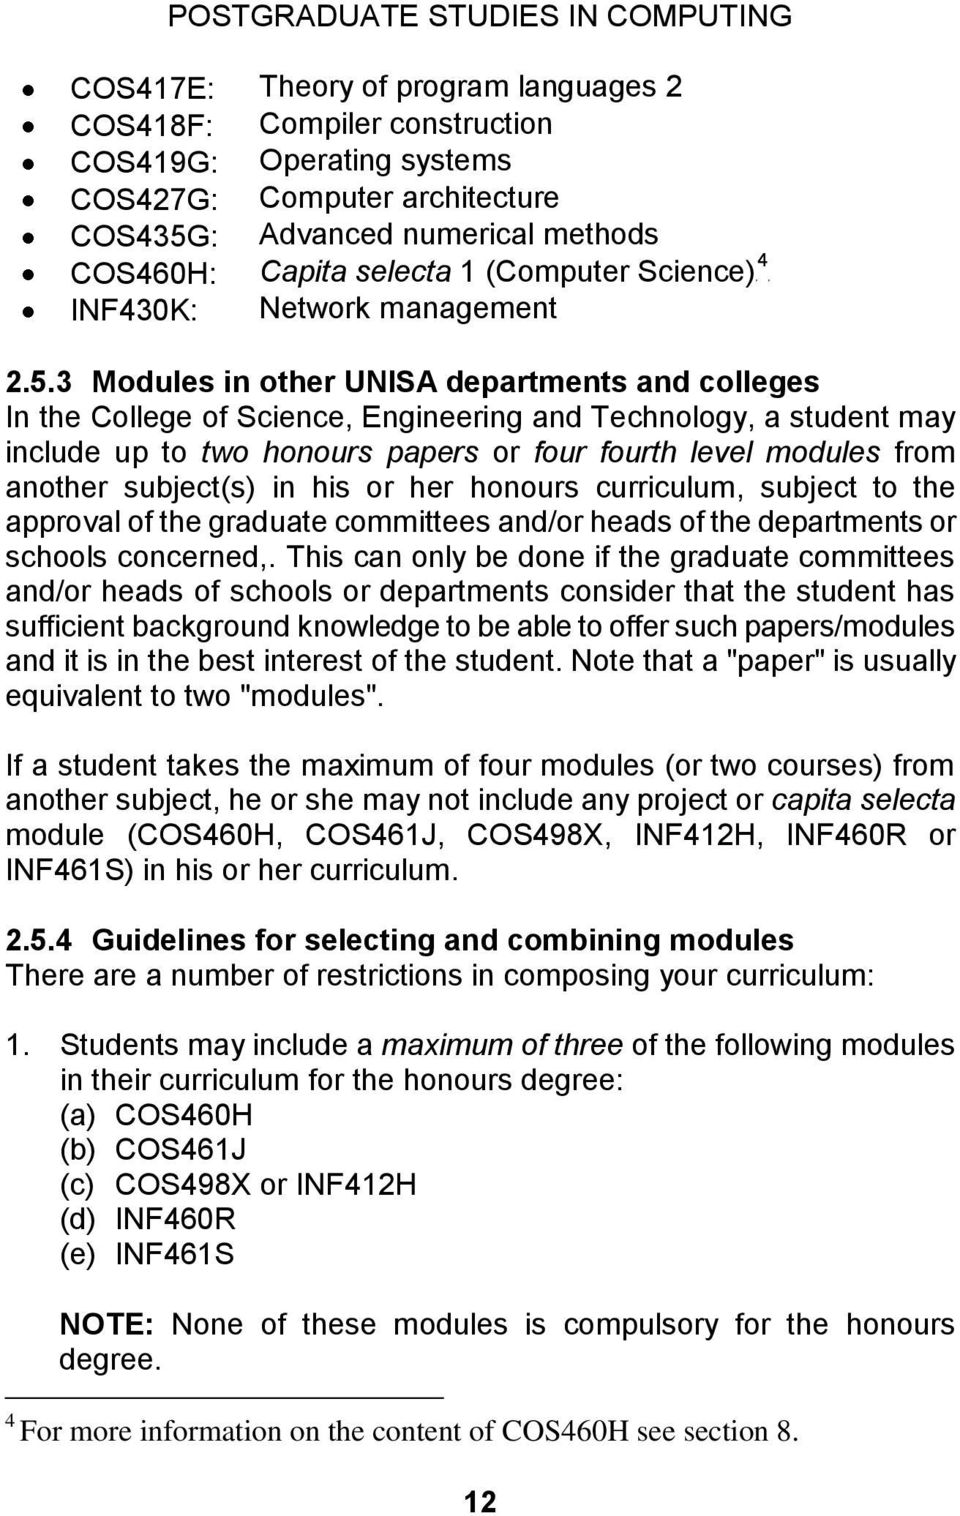 3 Modules in other UNISA departments and colleges In the College of Science, Engineering and Technology, a student may include up to two honours papers or four fourth level modules from another